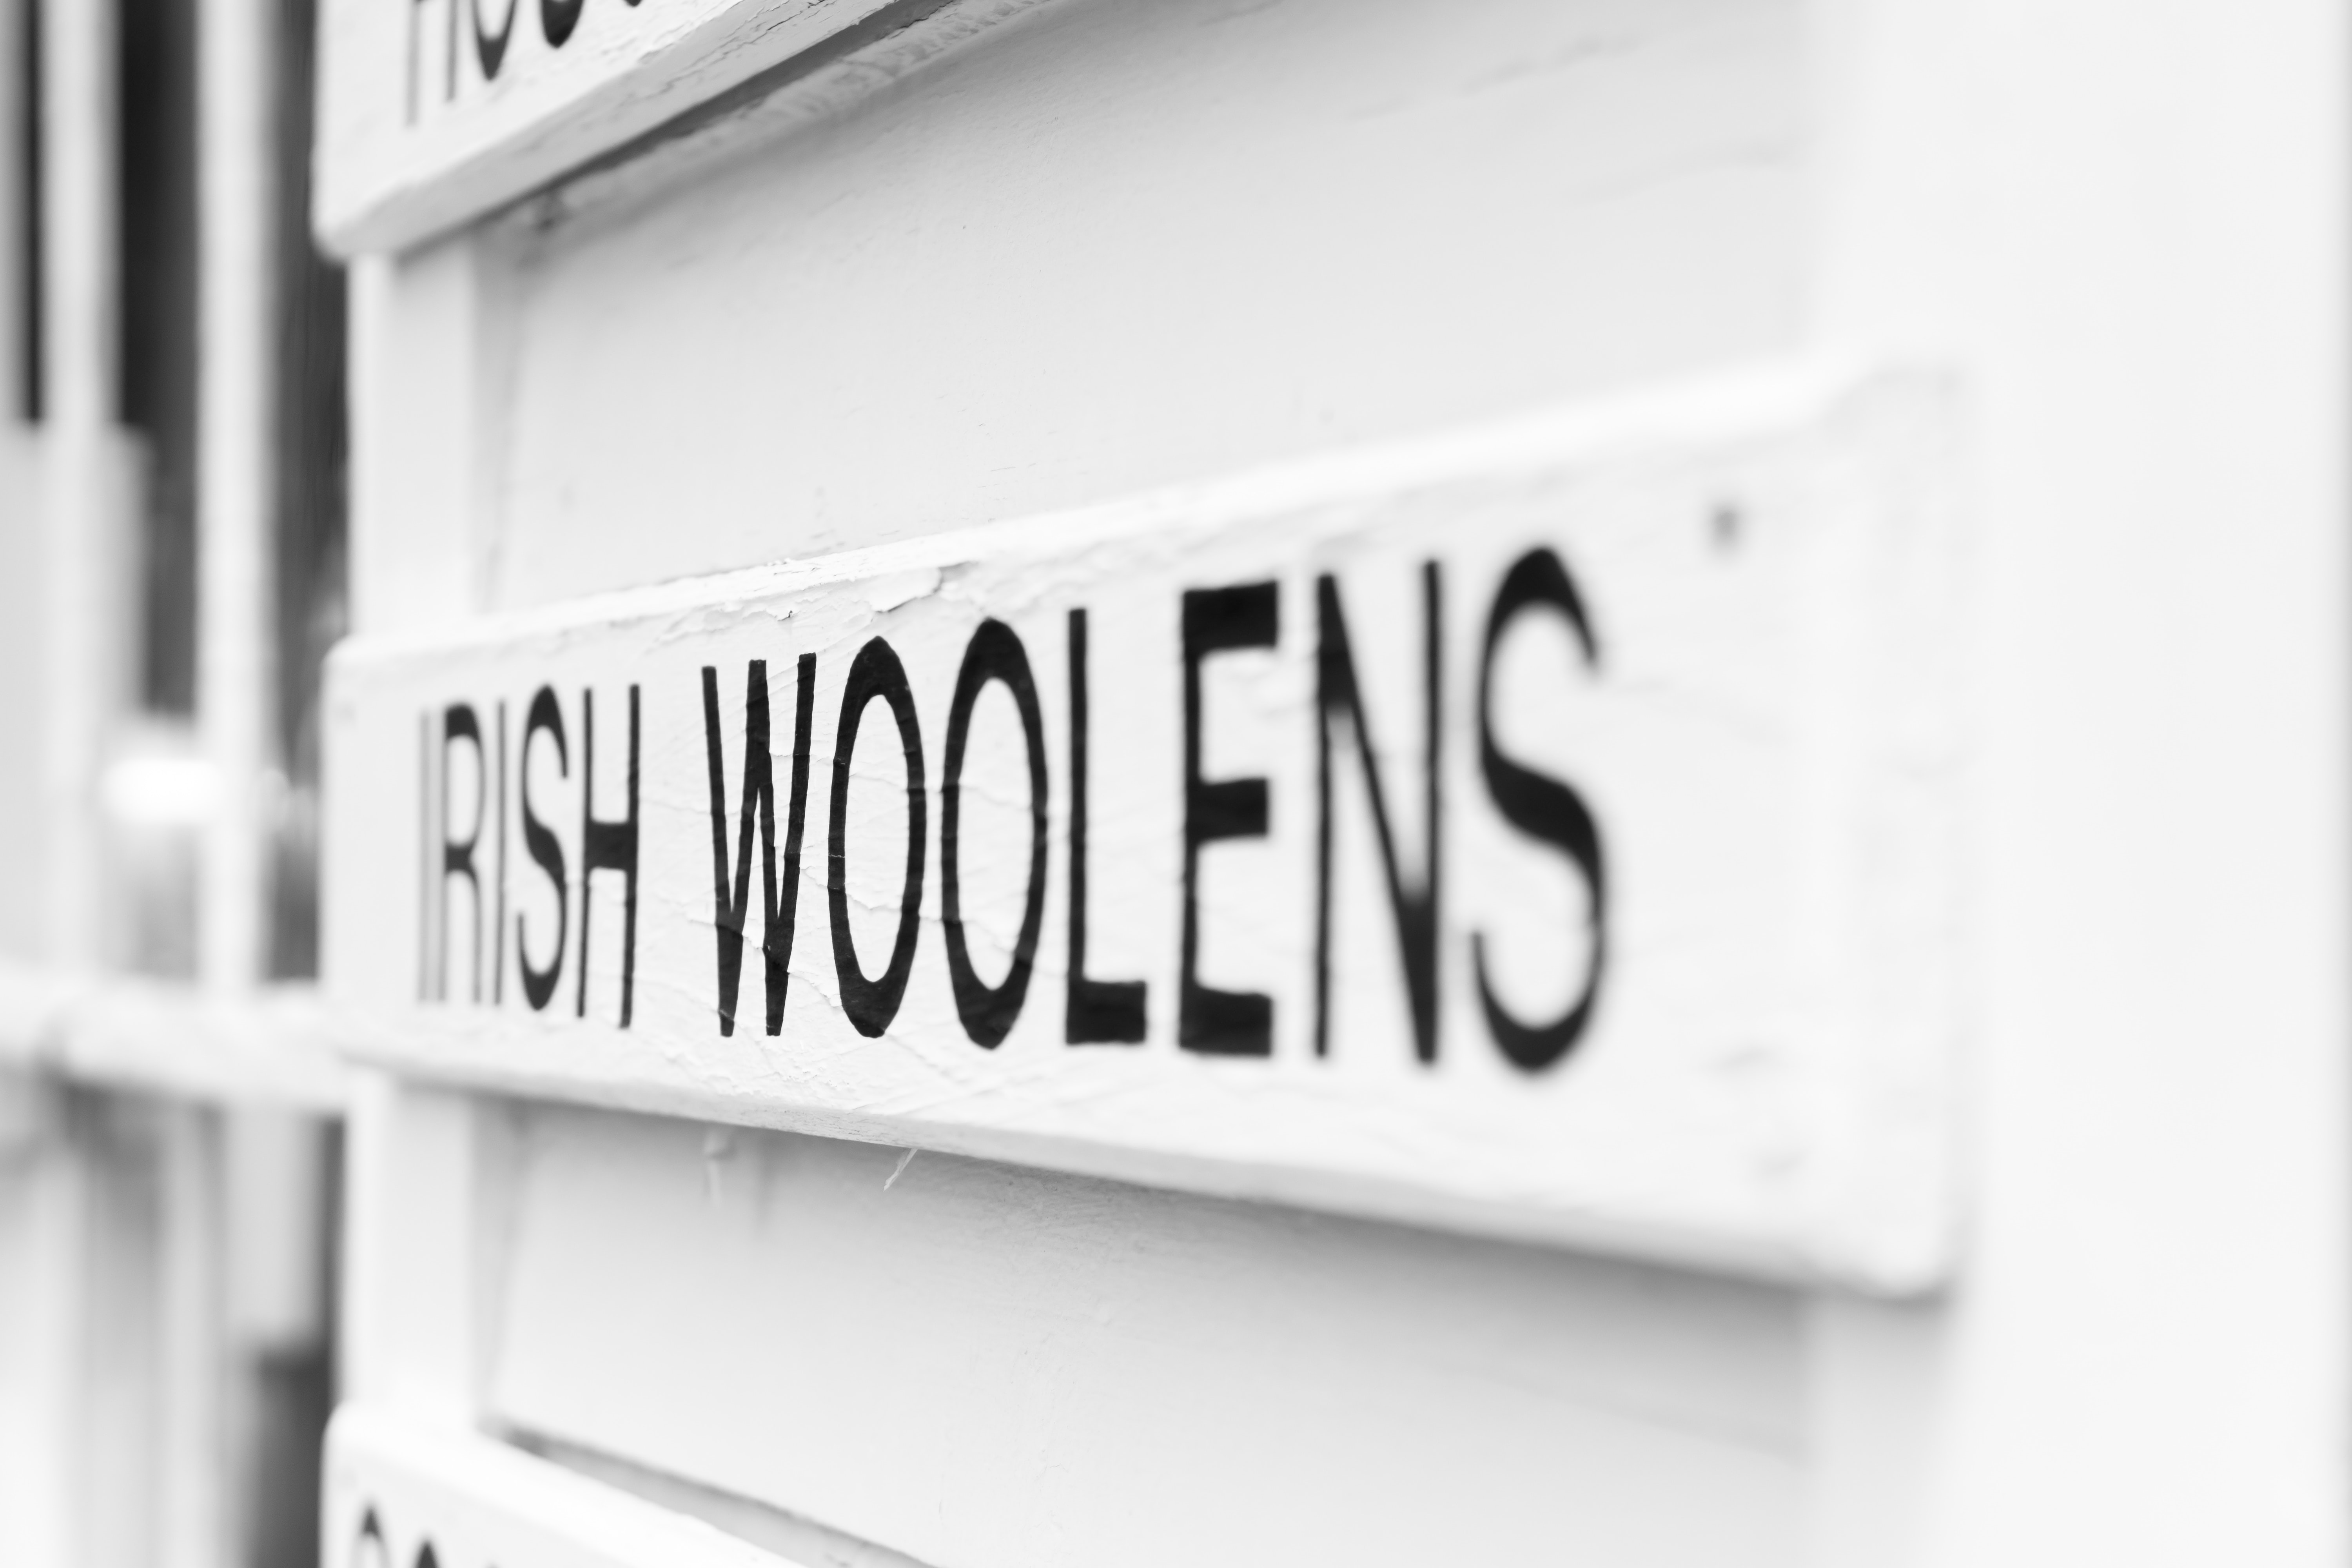 Irish Woolens logo